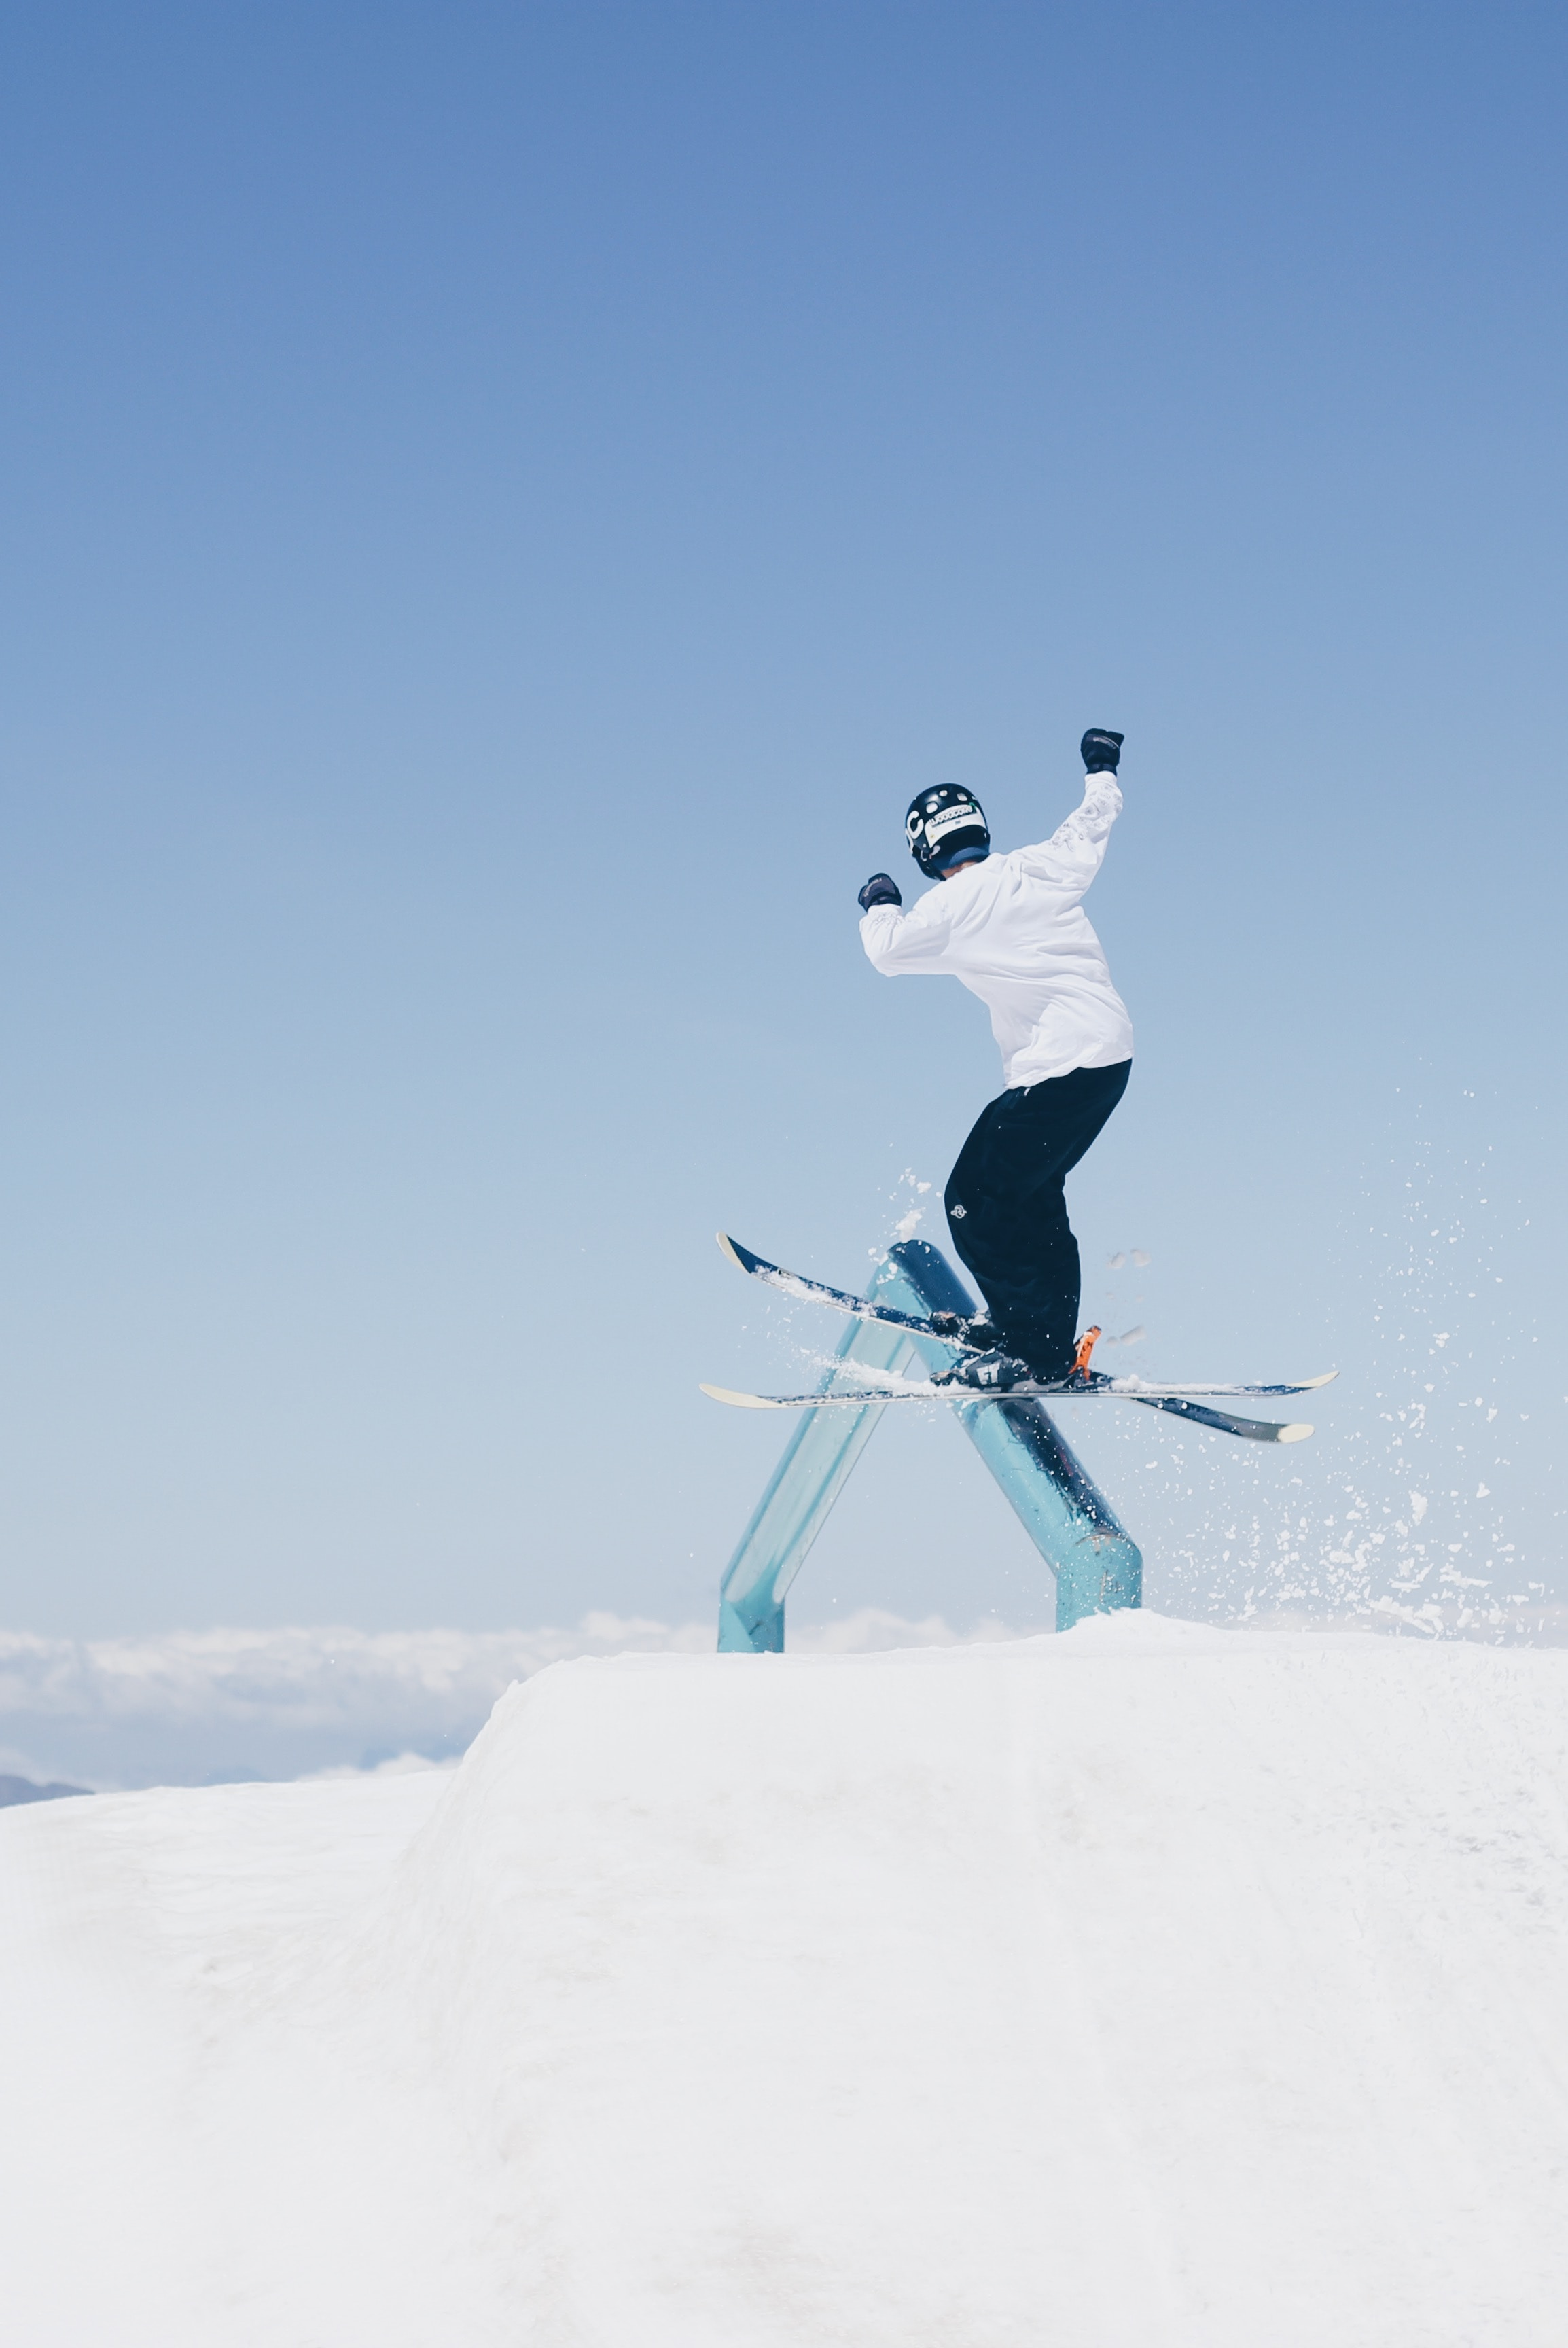 139337 download wallpaper Skier, Bounce, Jump, Trick, Skiing, Snow, Sports screensavers and pictures for free